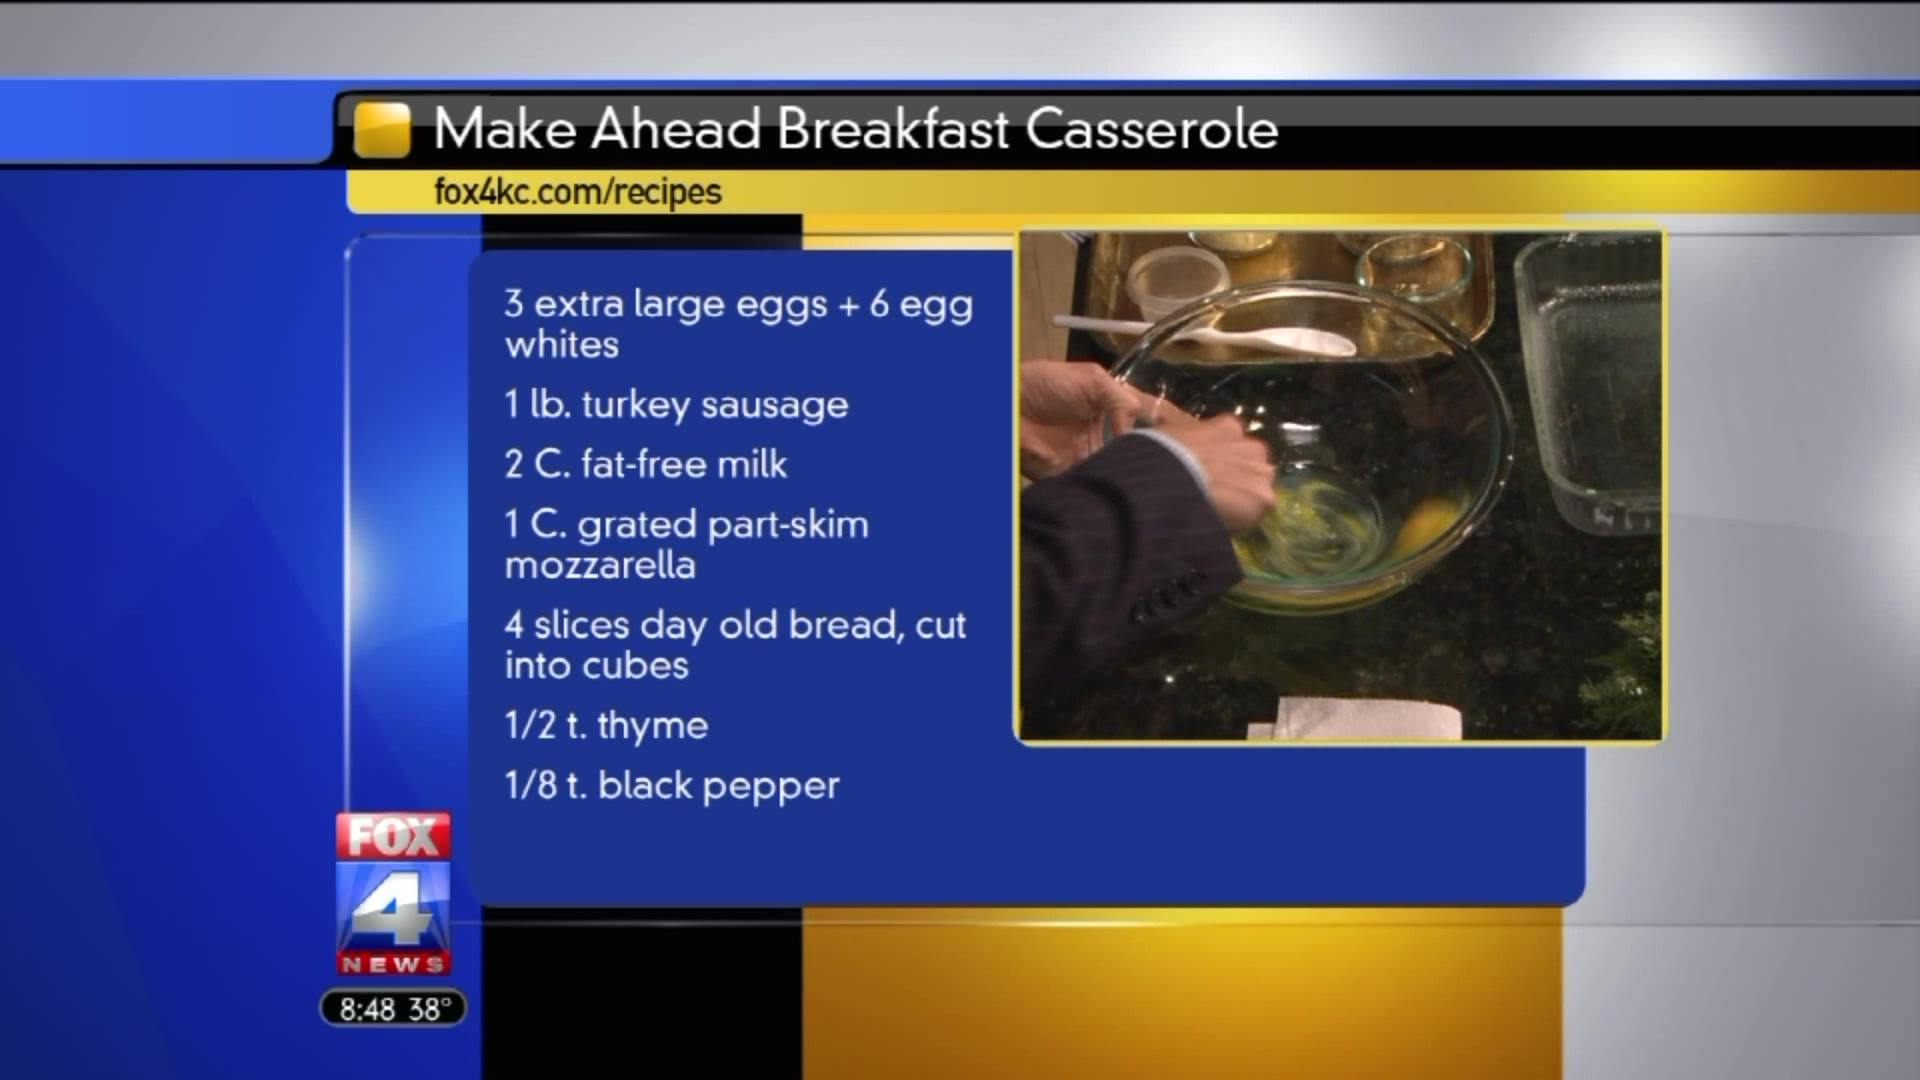 Healthy Make Ahead Breakfast Casserole Recipe